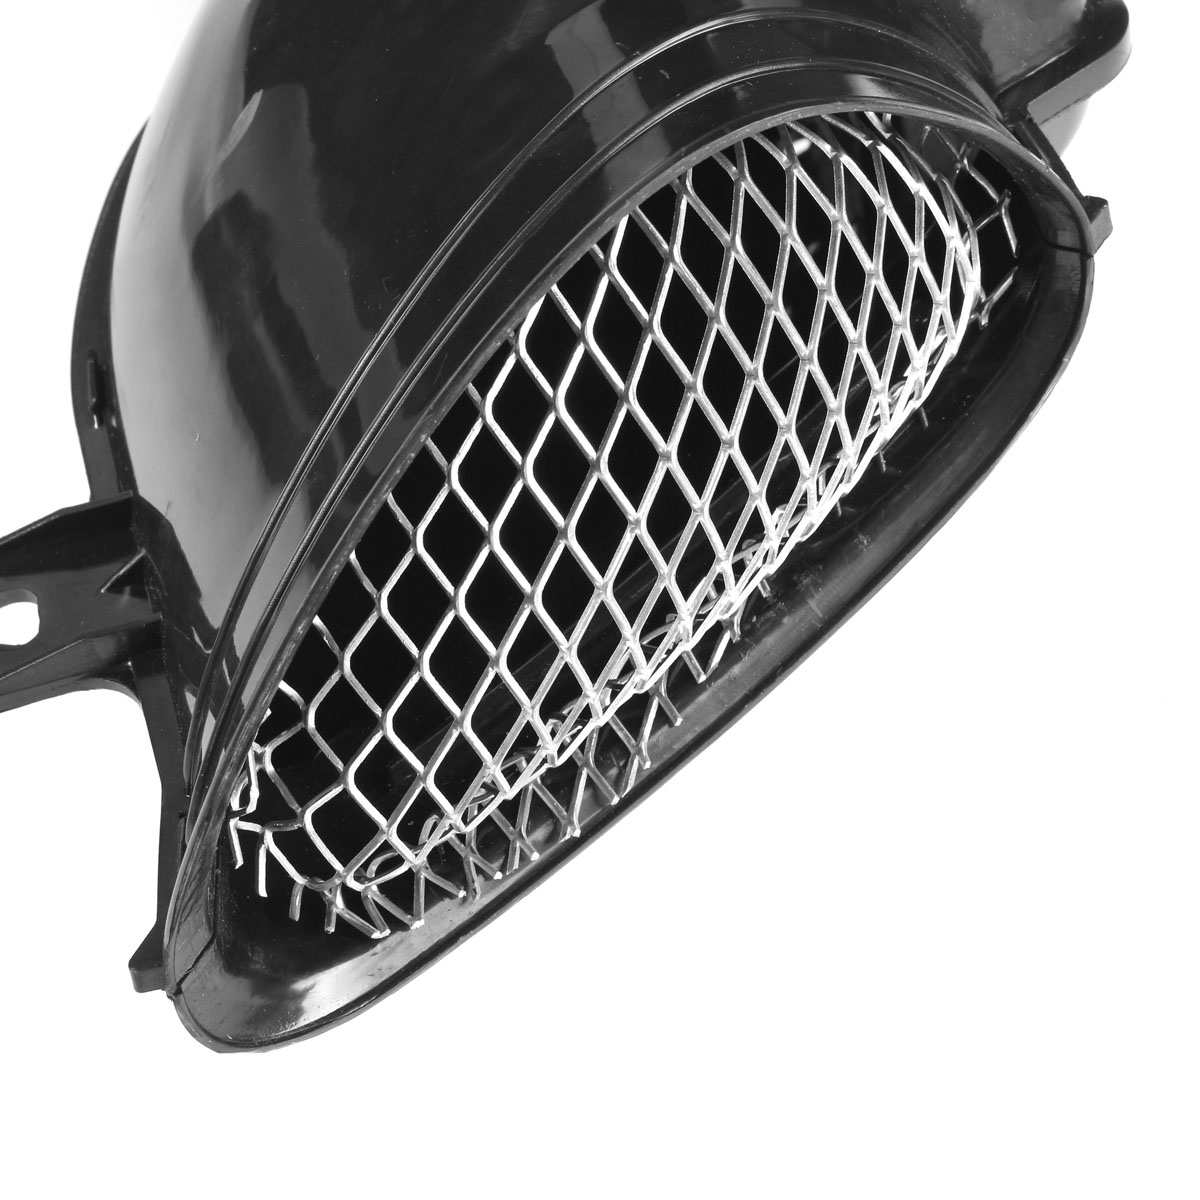 Motorcycle Air Intake Pipe Vent Tube For Suzuki GSXR 600 750 1000